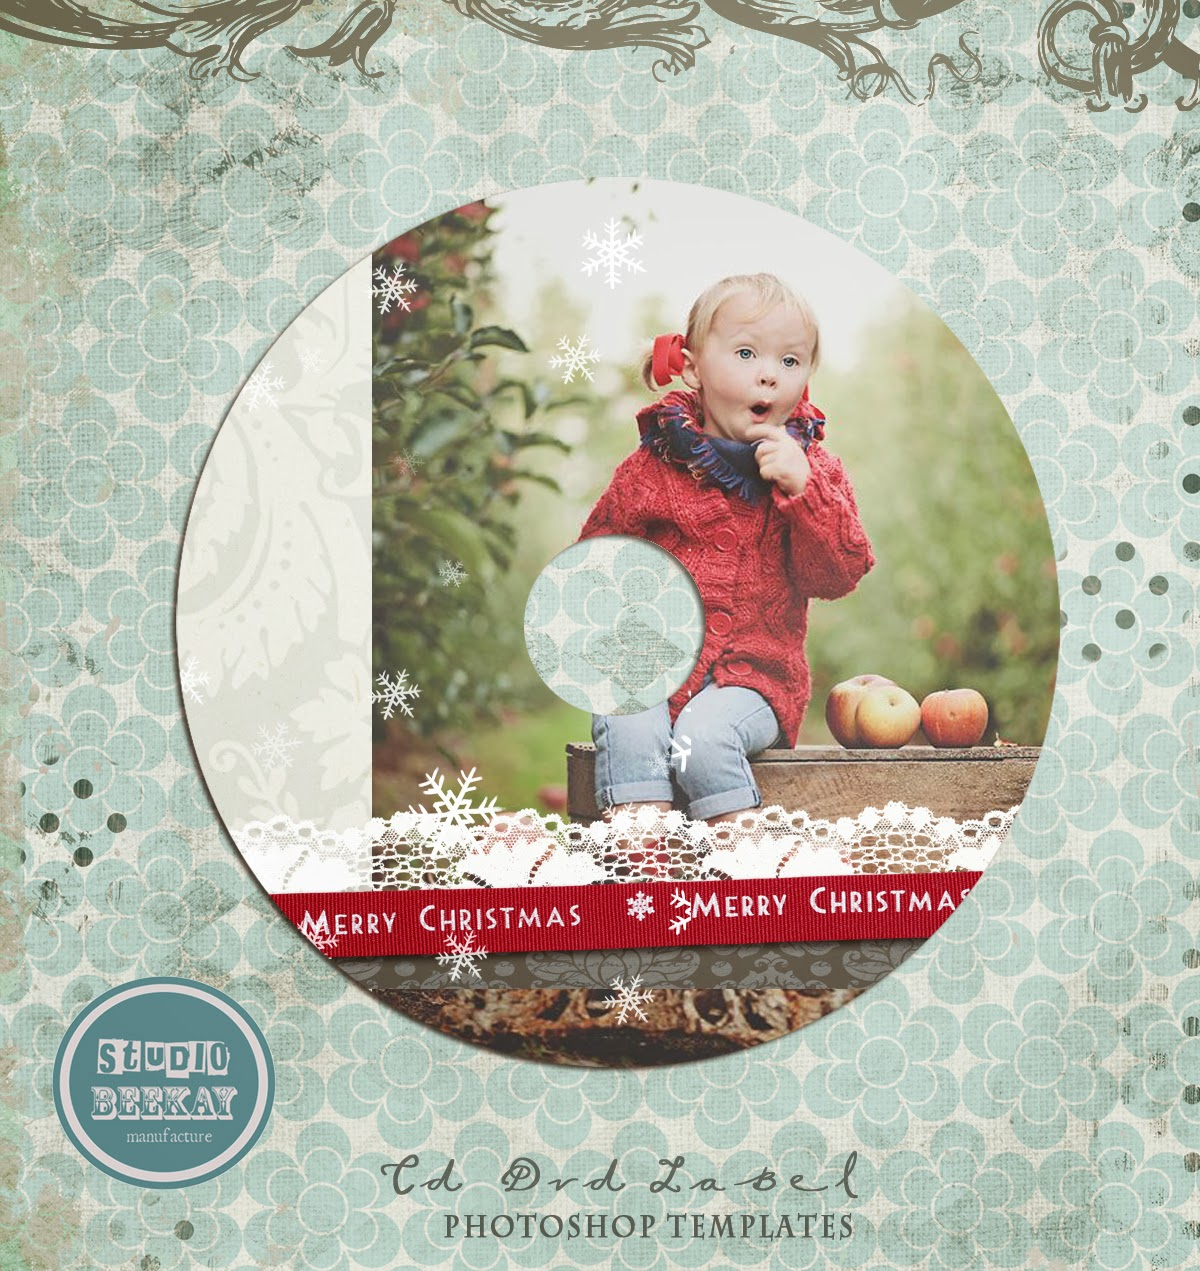 Photoshop Templates For Pro Photographers New Christmas Photo Card